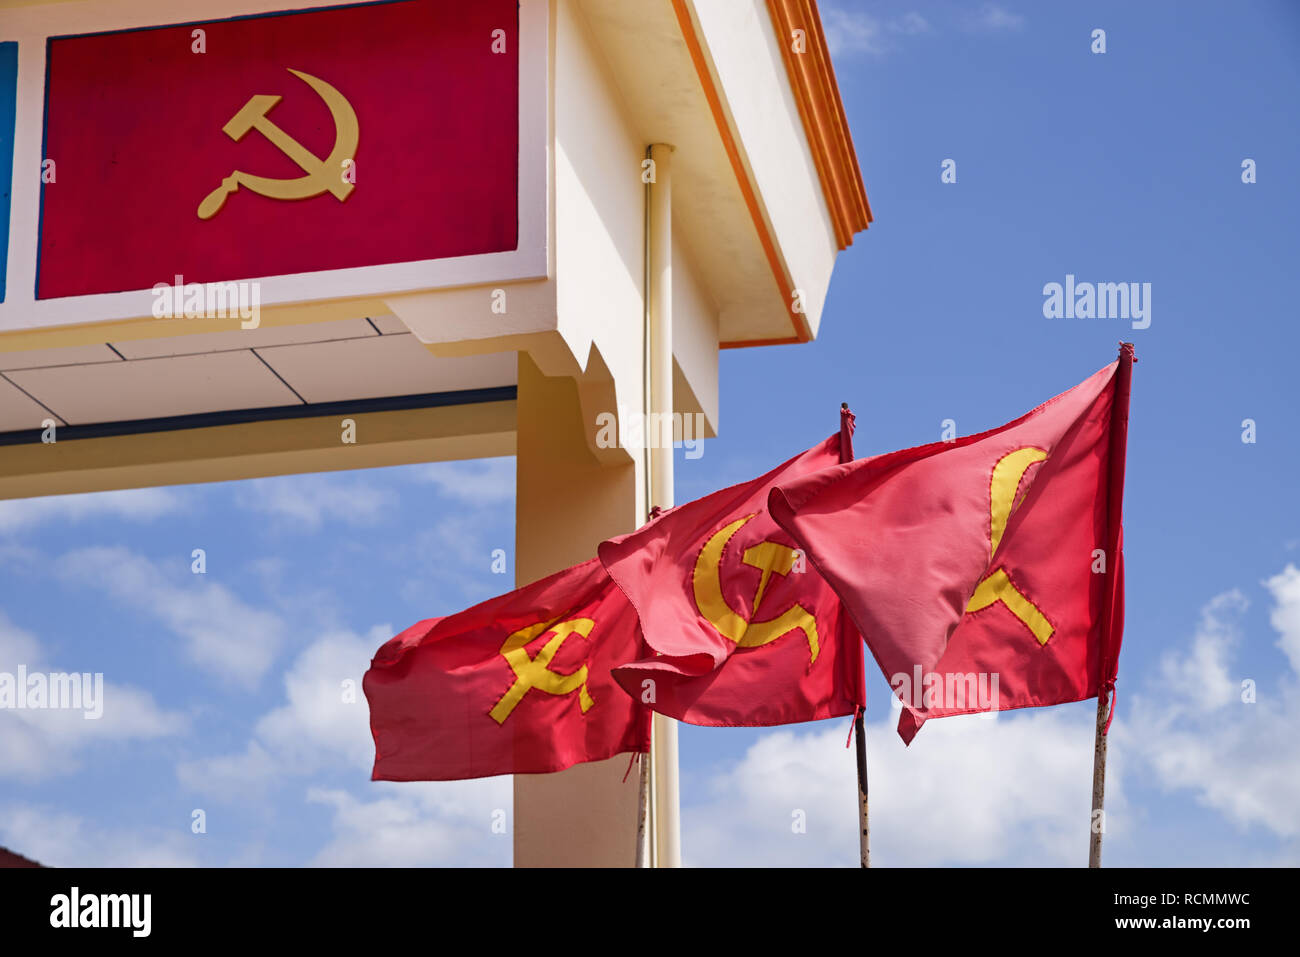 yellow and read hammer and sickle flags and decoration on an arch in Laos these are the flag of the Lao People's Revolutionary Party - Stock Image